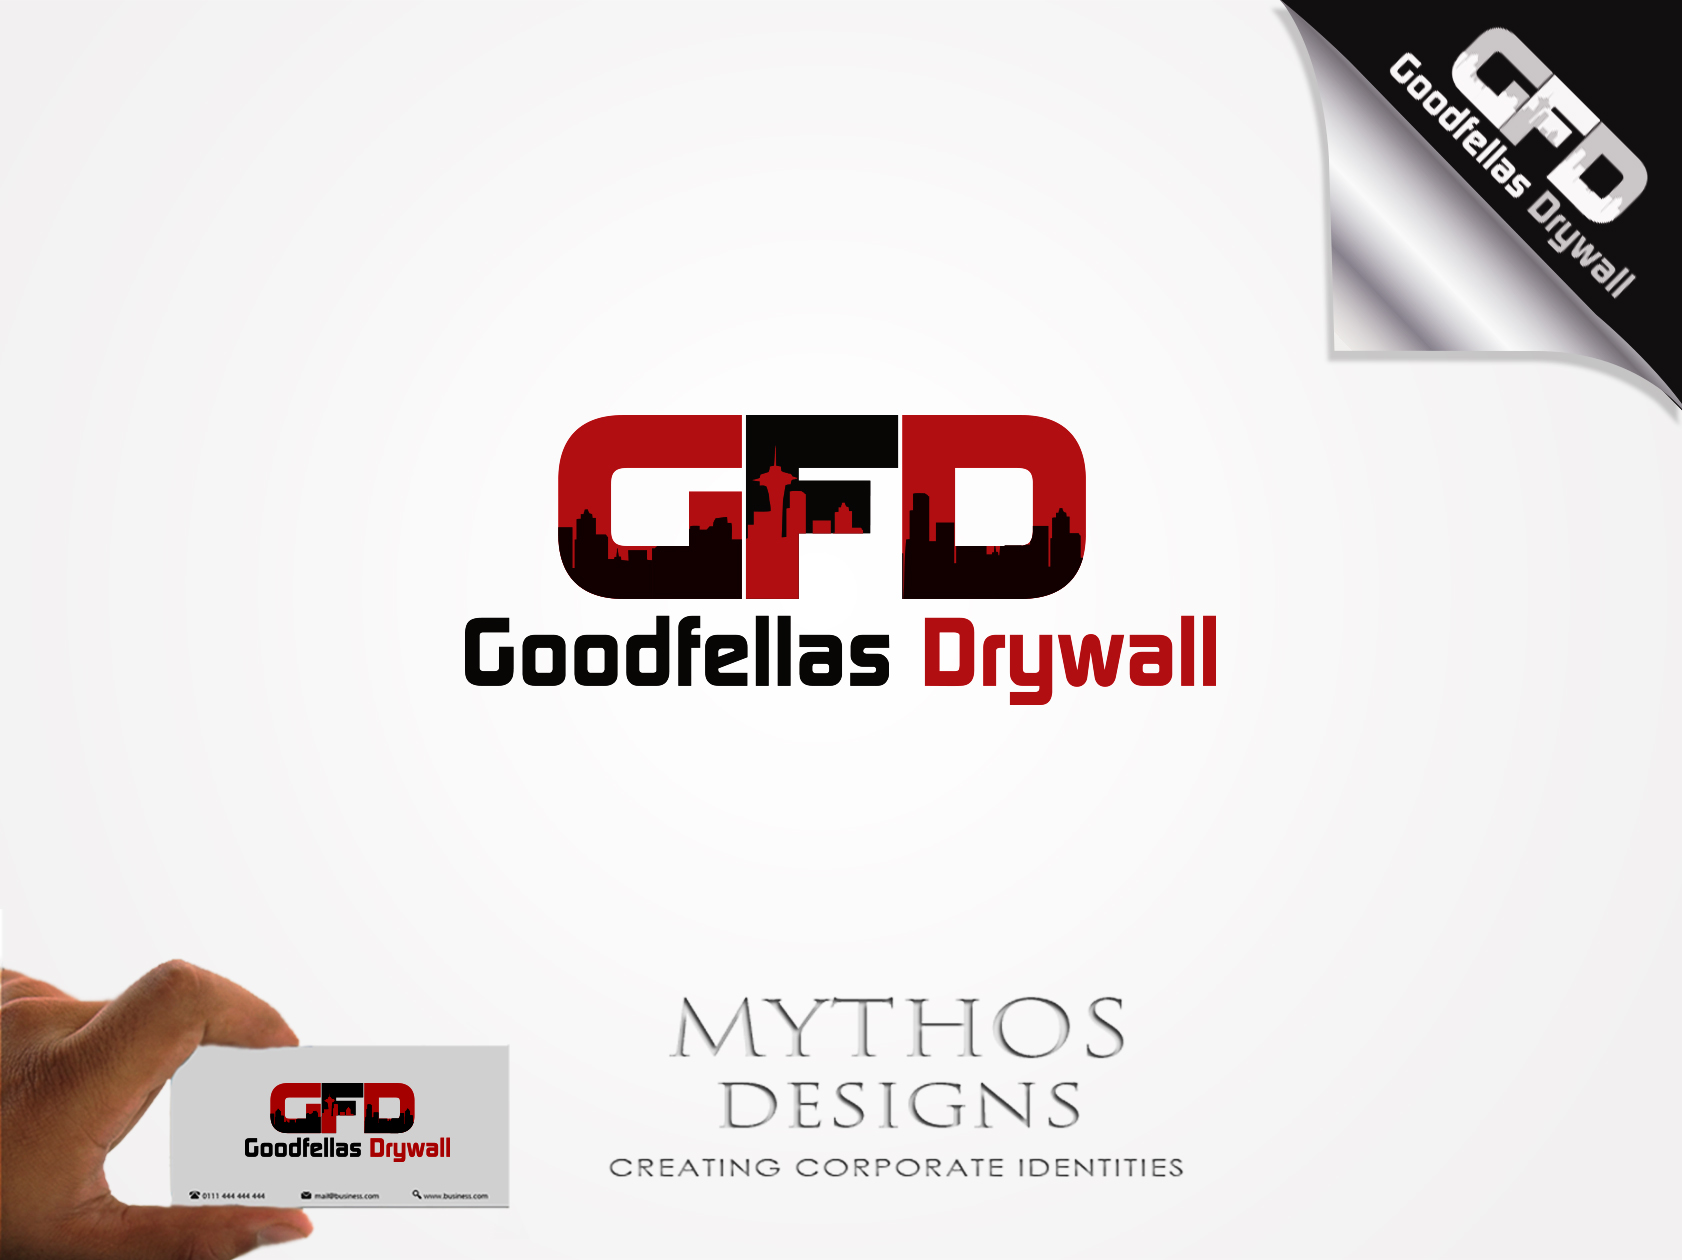 Logo Design by Mythos Designs - Entry No. 107 in the Logo Design Contest Creative Logo Design for Goodfellas Drywall.